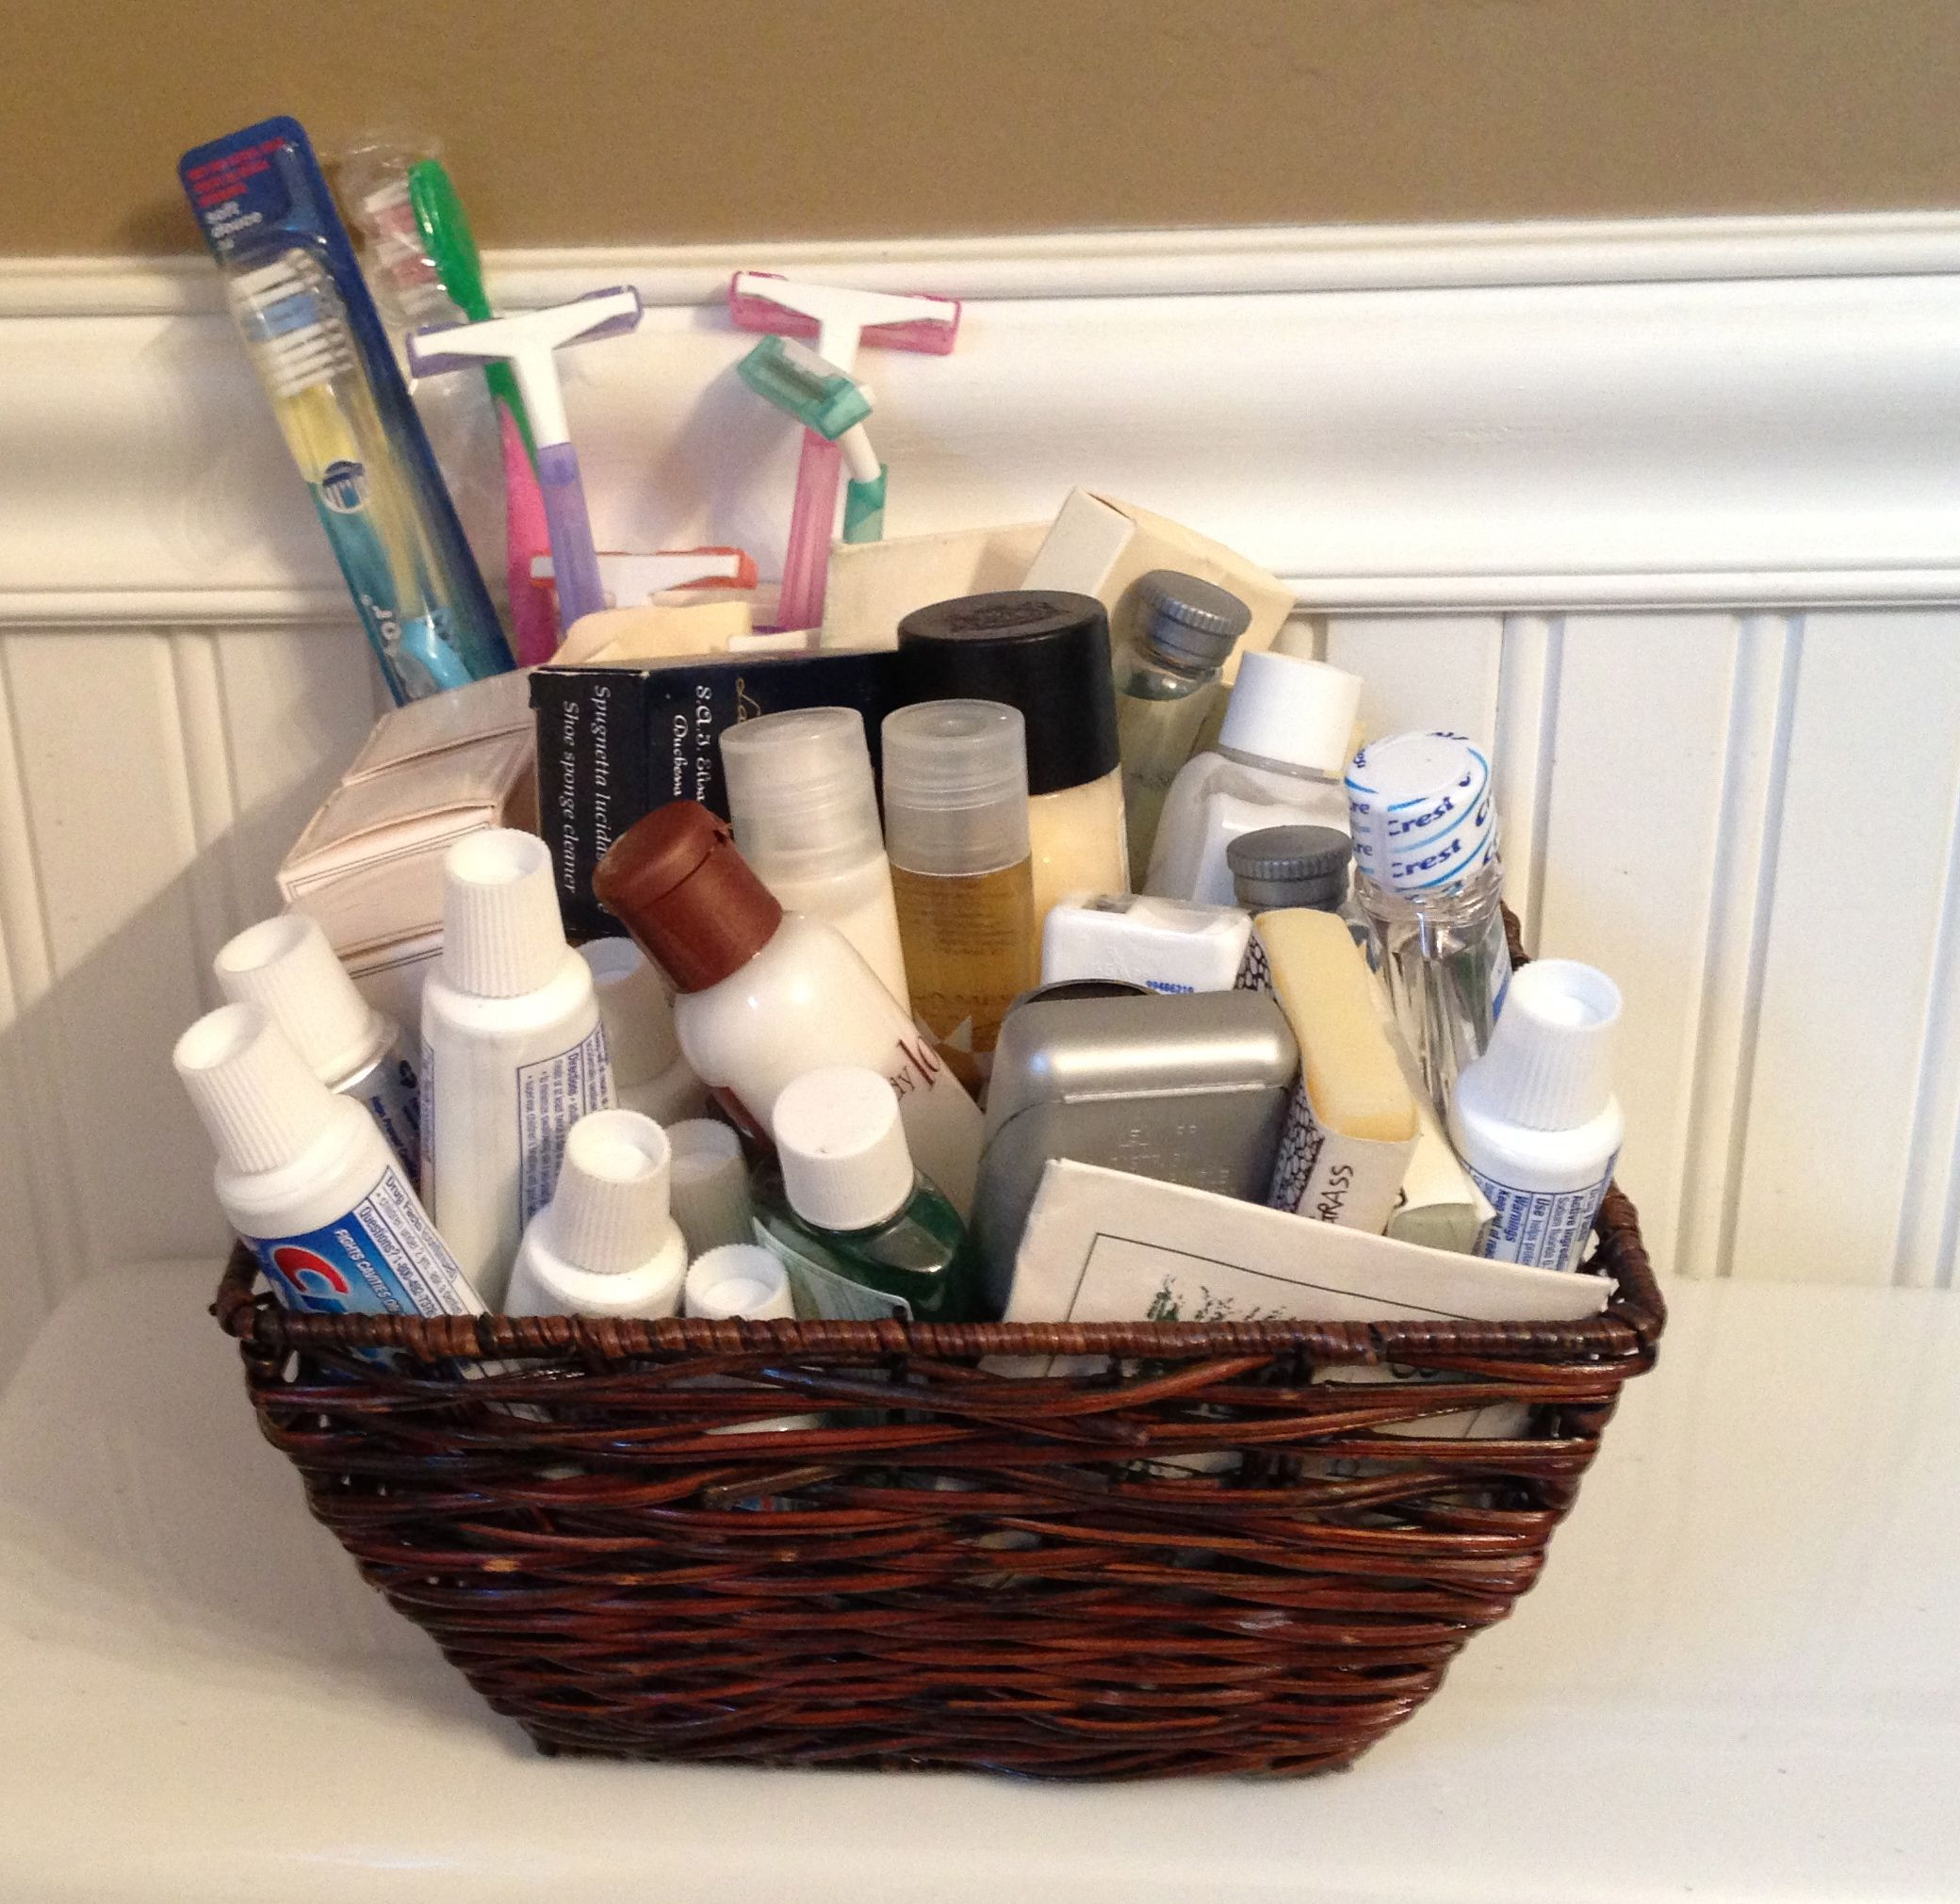 I Keep A Basket Of Sample Toiletries Collected From Hotels Along With Extra Toothbrushes In A Basket In My Guest Bathr Hotel Toiletries Basket Homemade Gifts